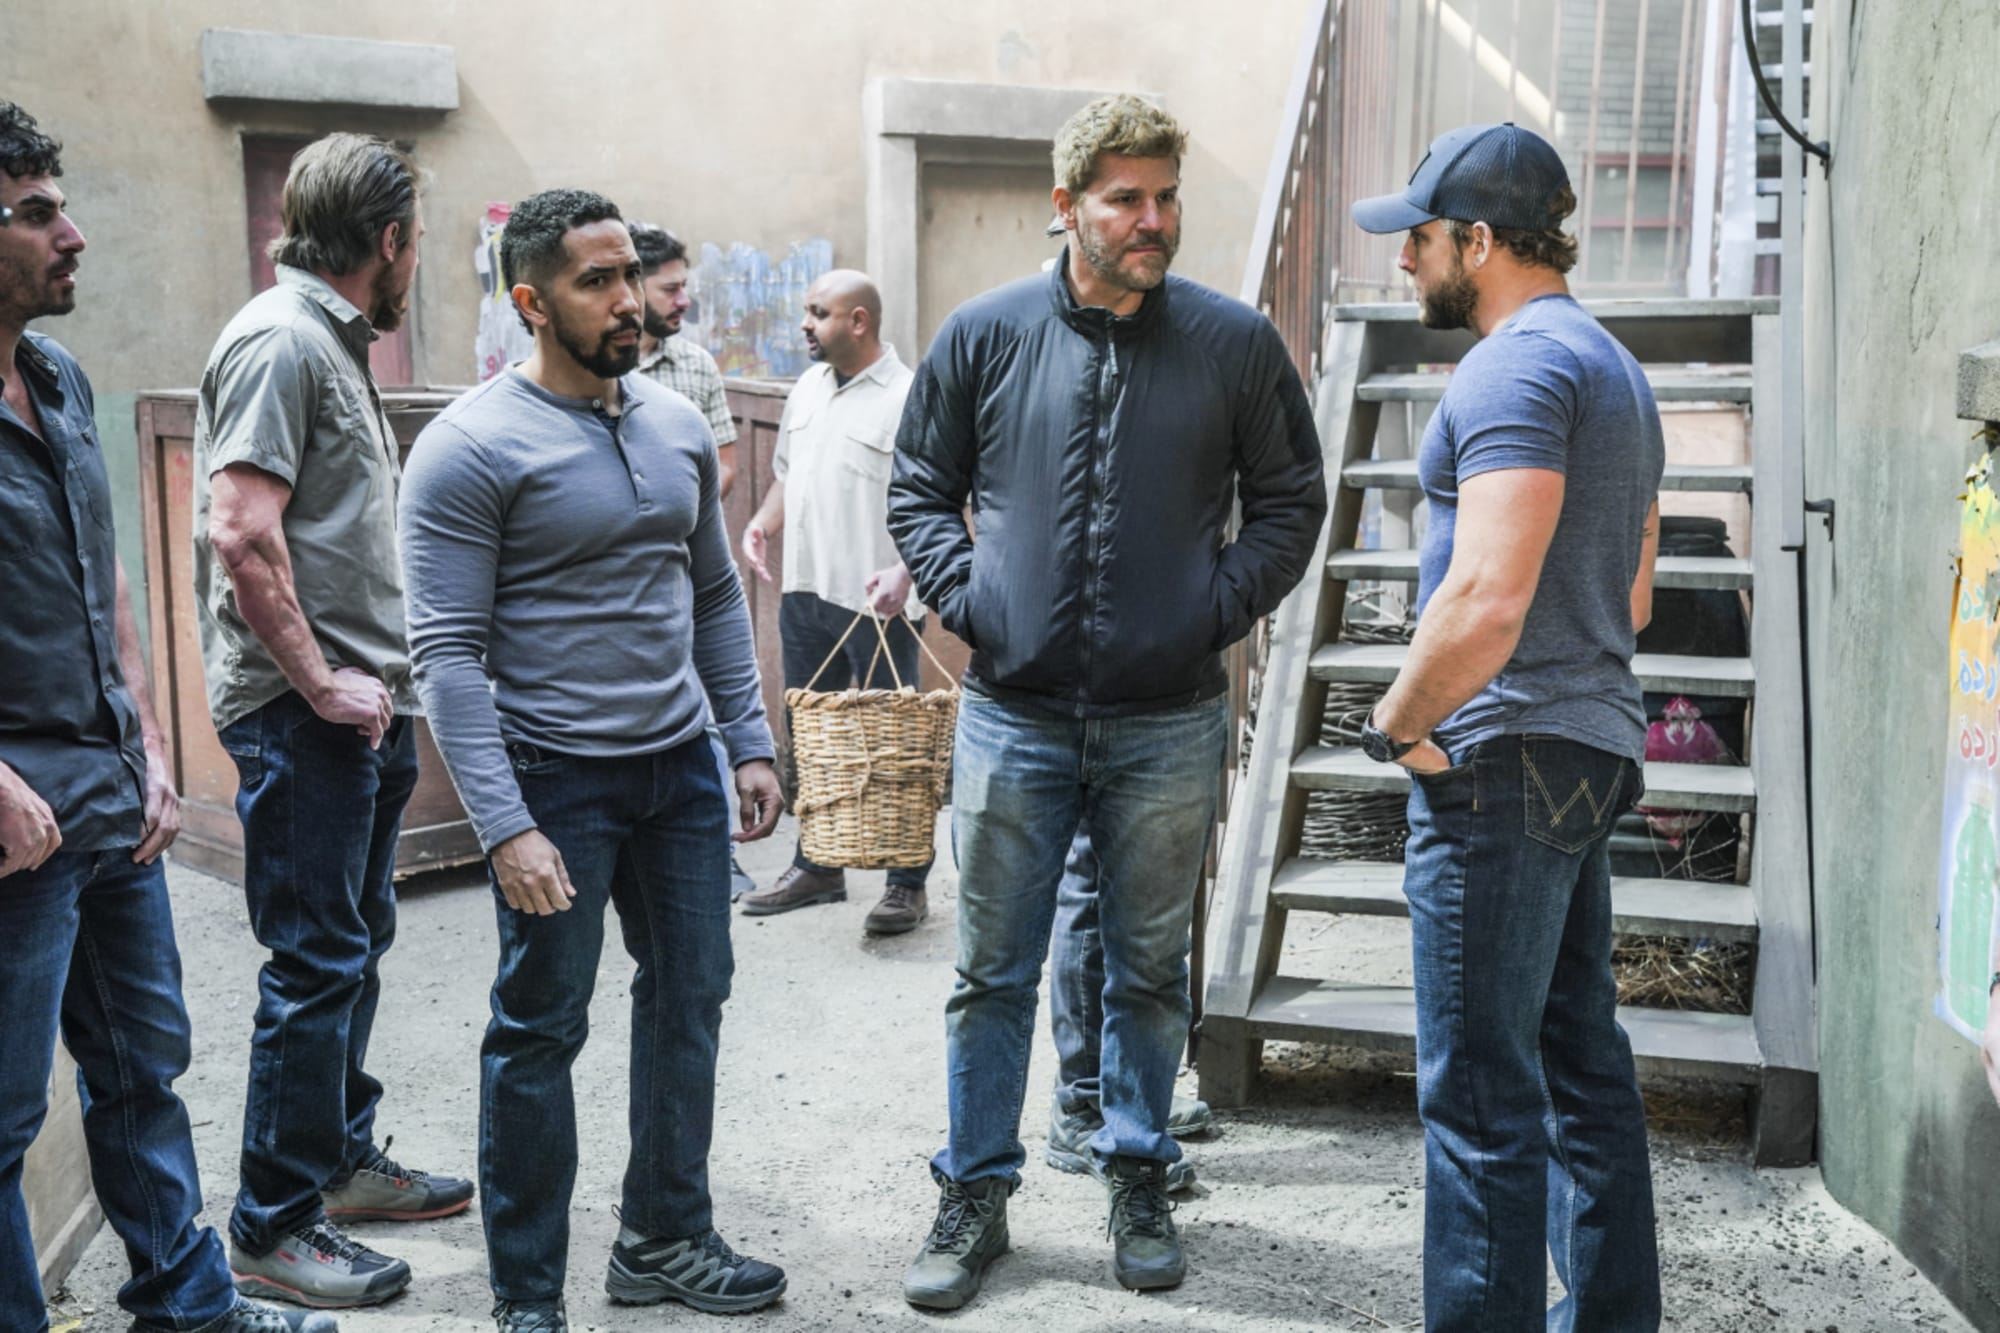 SEAL Team Season 5 premiere date, cast, trailer, synopsis, and more